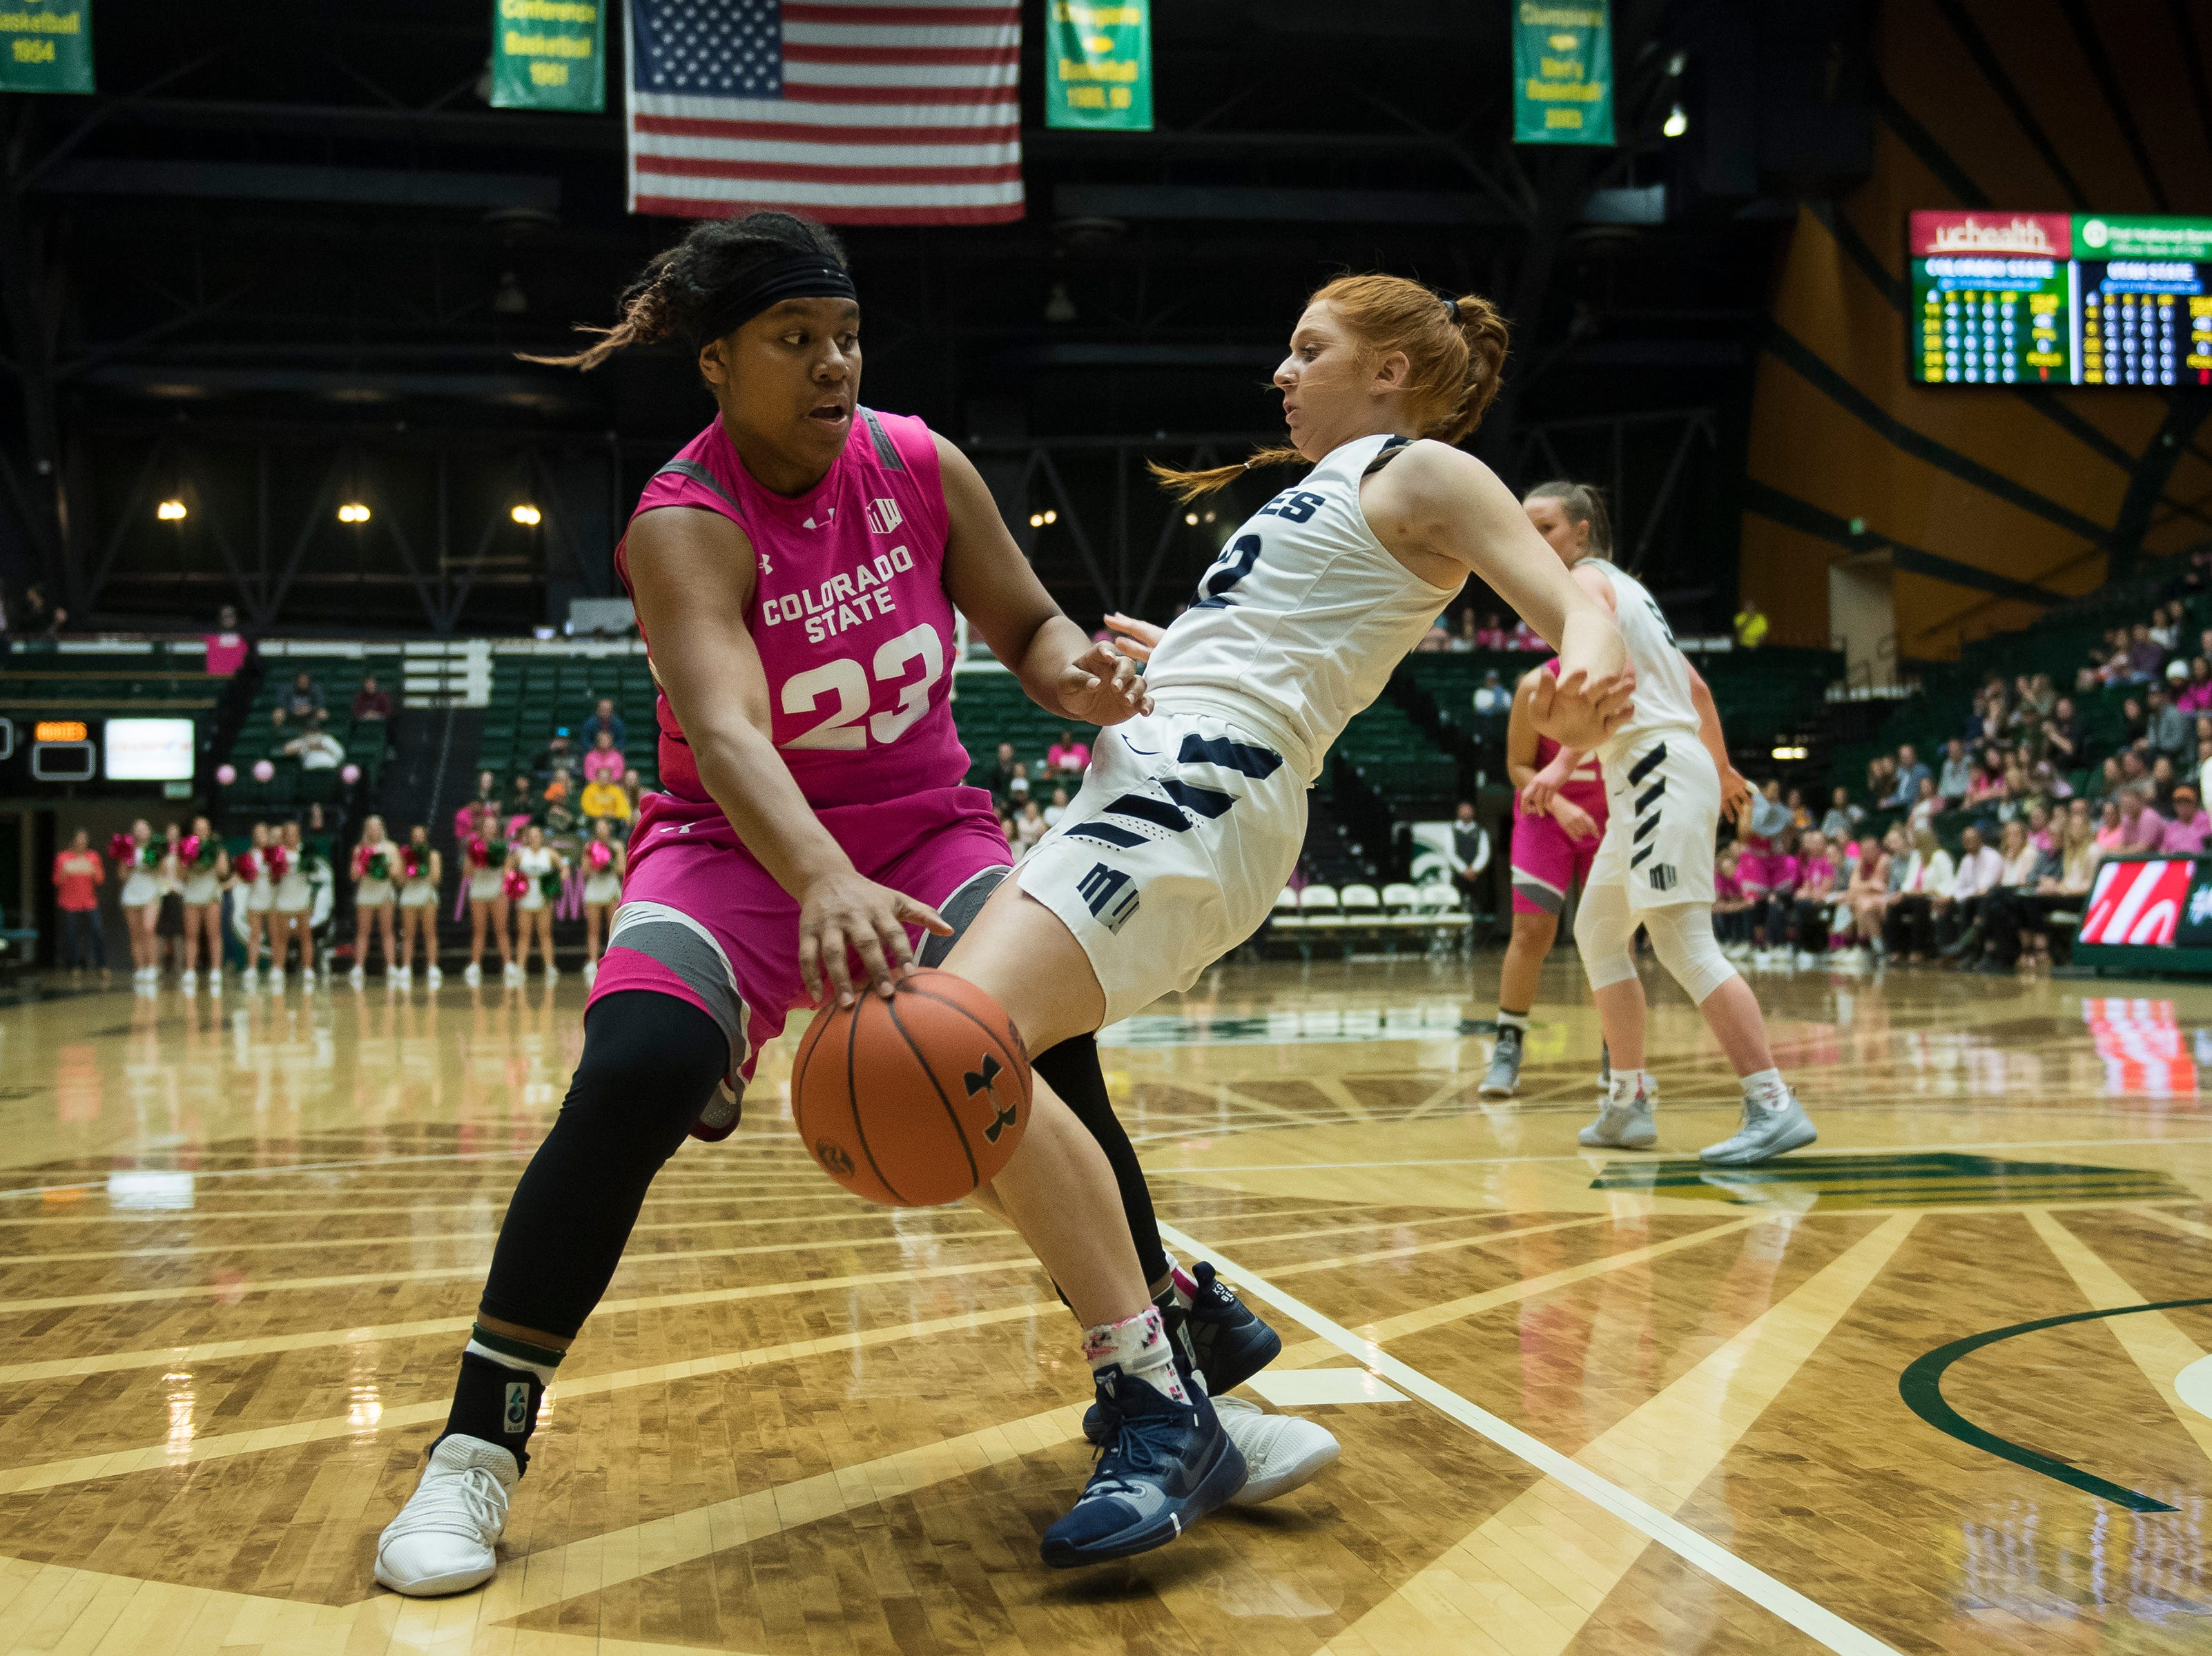 Colorado State University sophomore guard Grace Colaivalu (23) fouls Utah State sophomore guard Emma Harris (32) on Saturday, Jan. 19, 2019, at Moby Arena in Fort Collins, Colo.